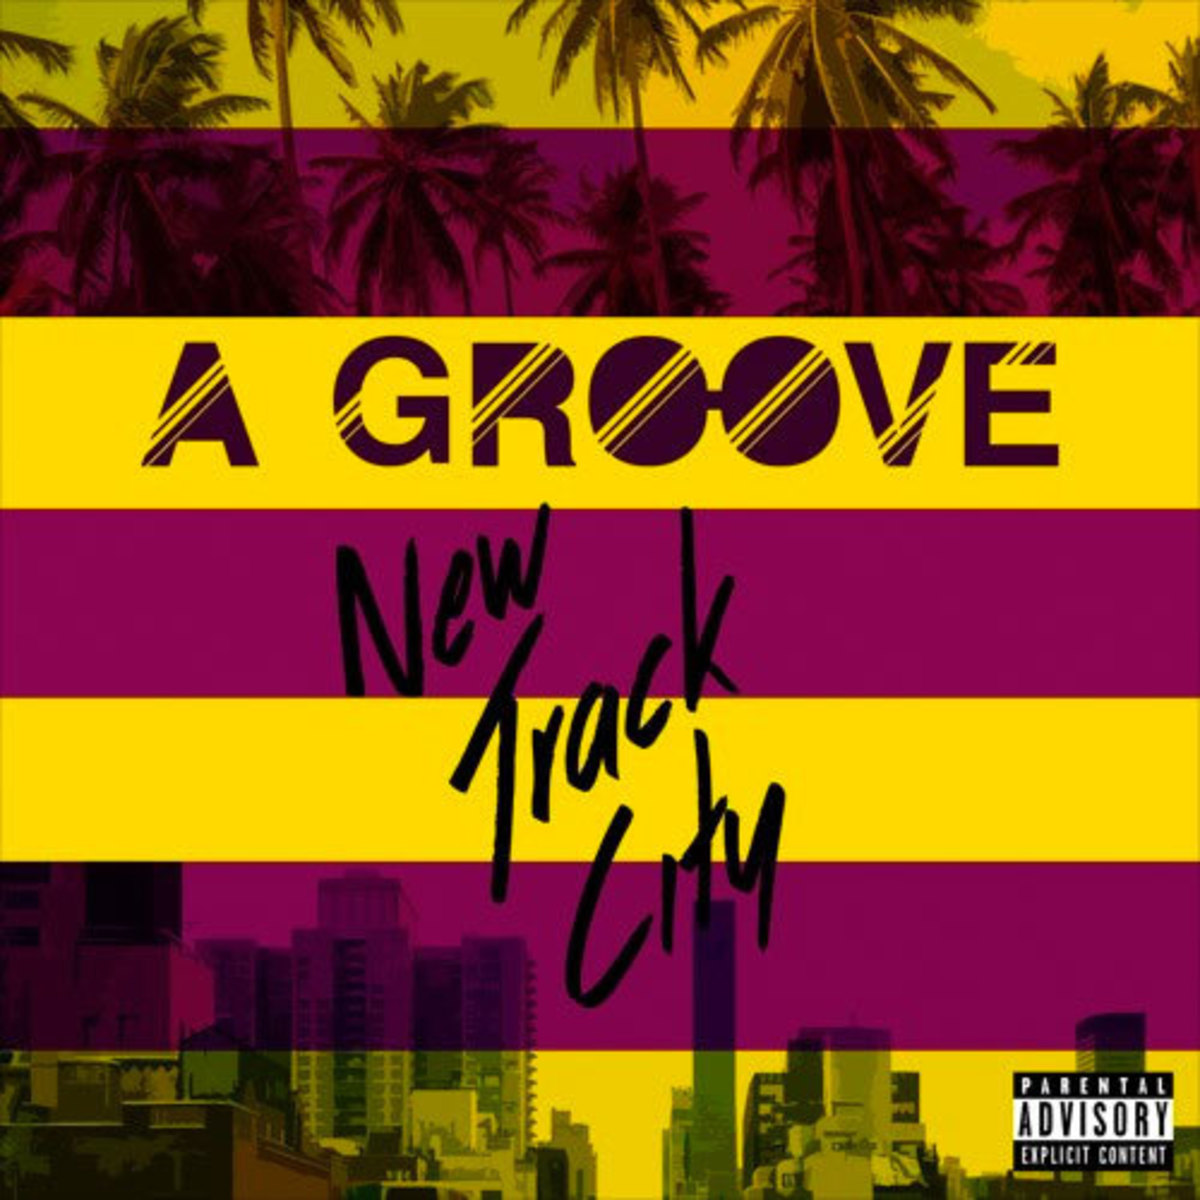 new-track-city-a-groove.jpg